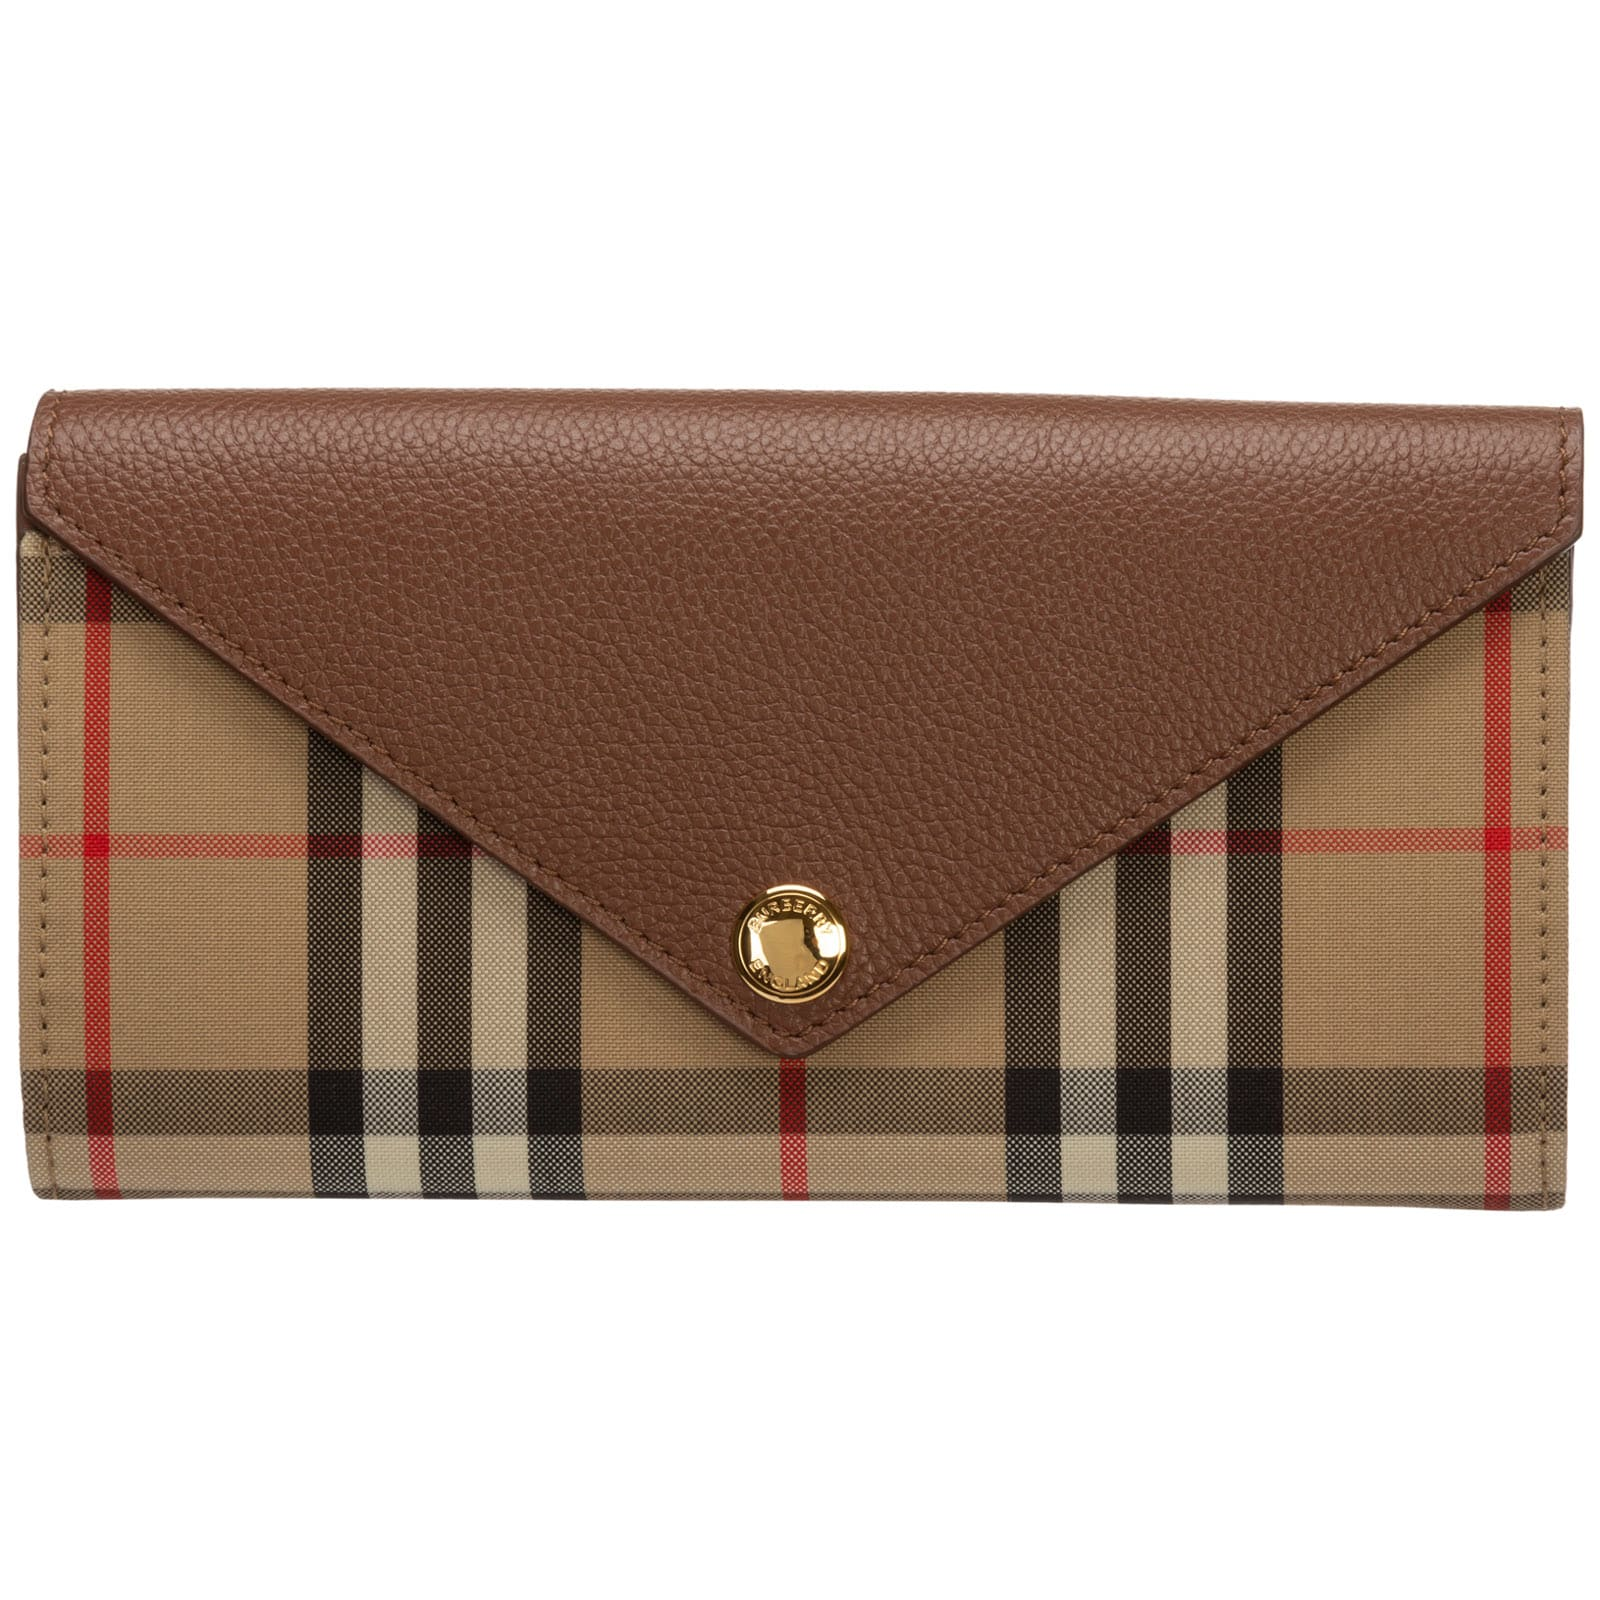 Burberry Camera Wallet In Marrone